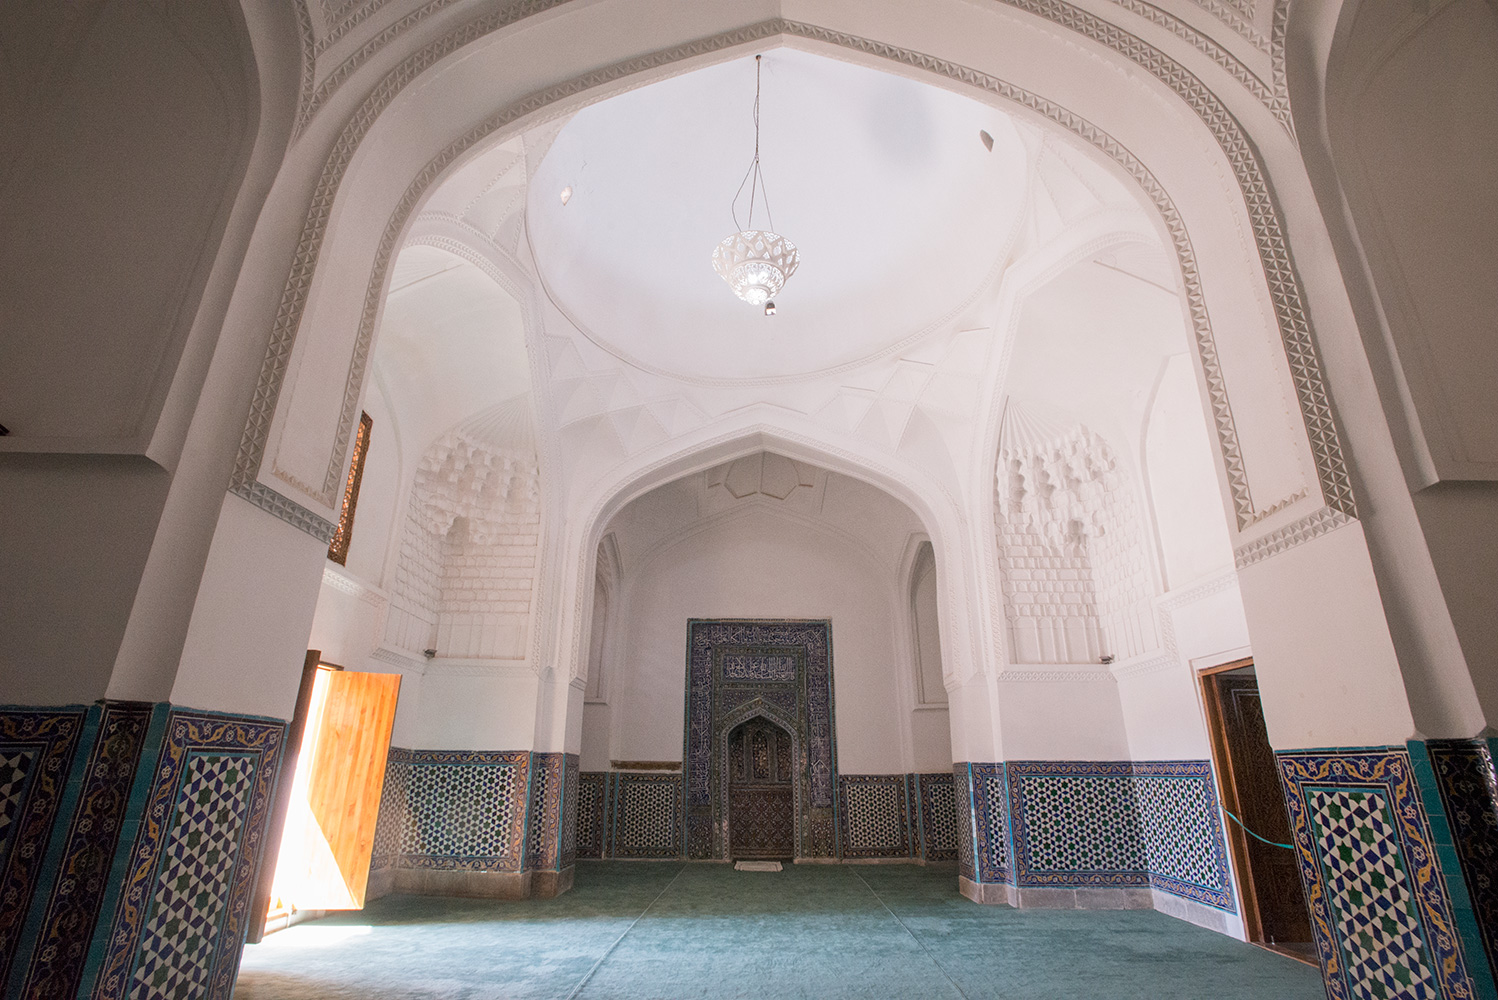 Kussan ibn Abbas MasjidBuilt in 1460The musalla and mihrab